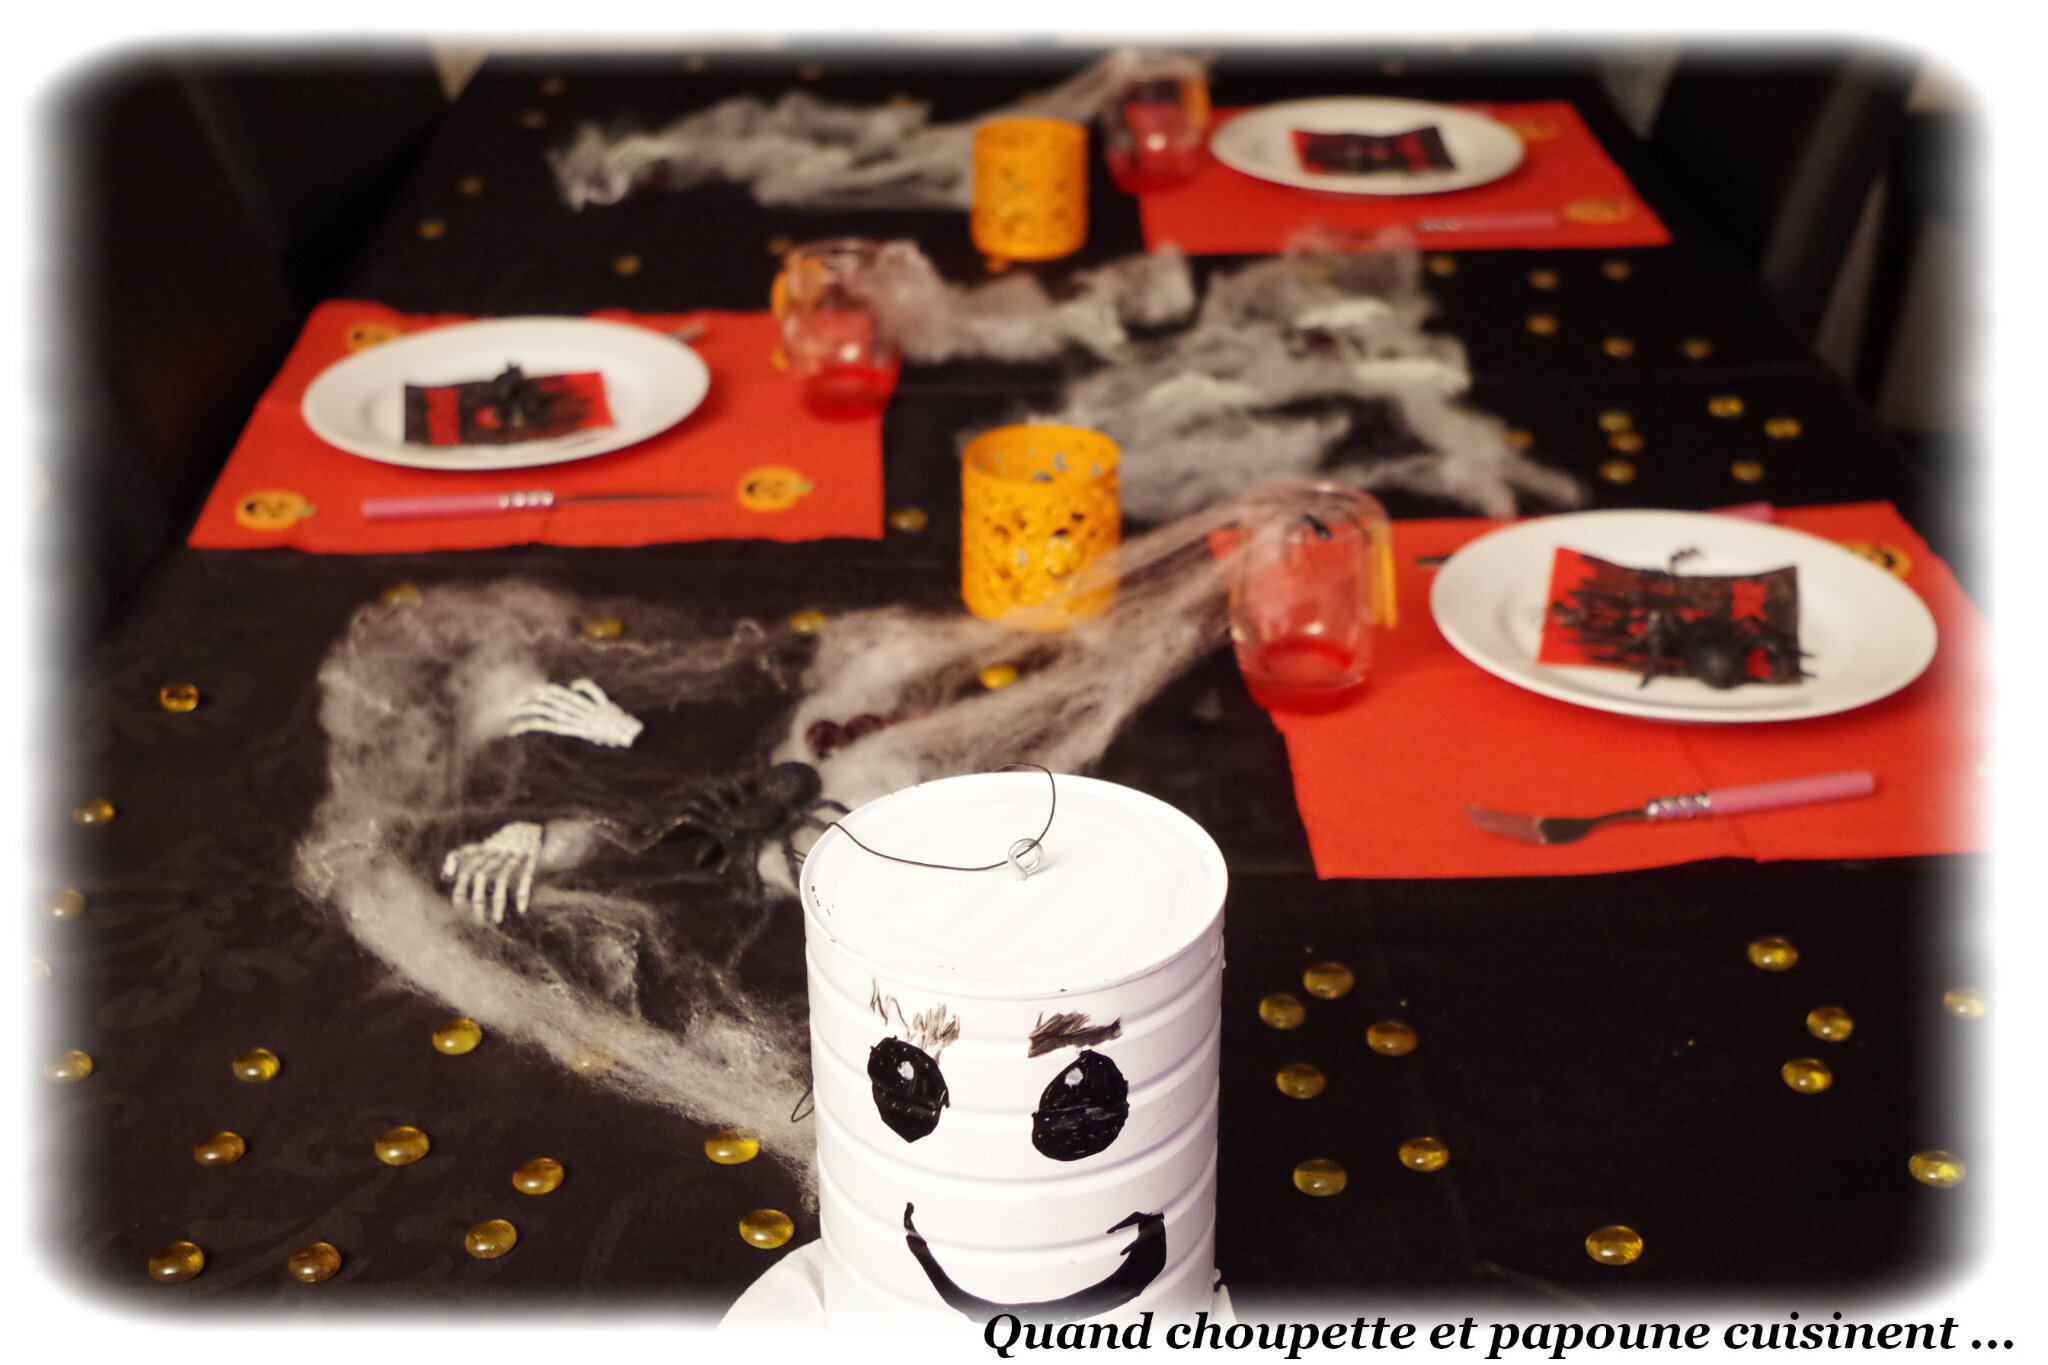 TABLE HALLOWEEN 2019 DRESSEE PAR MA PETITE FILLE ...